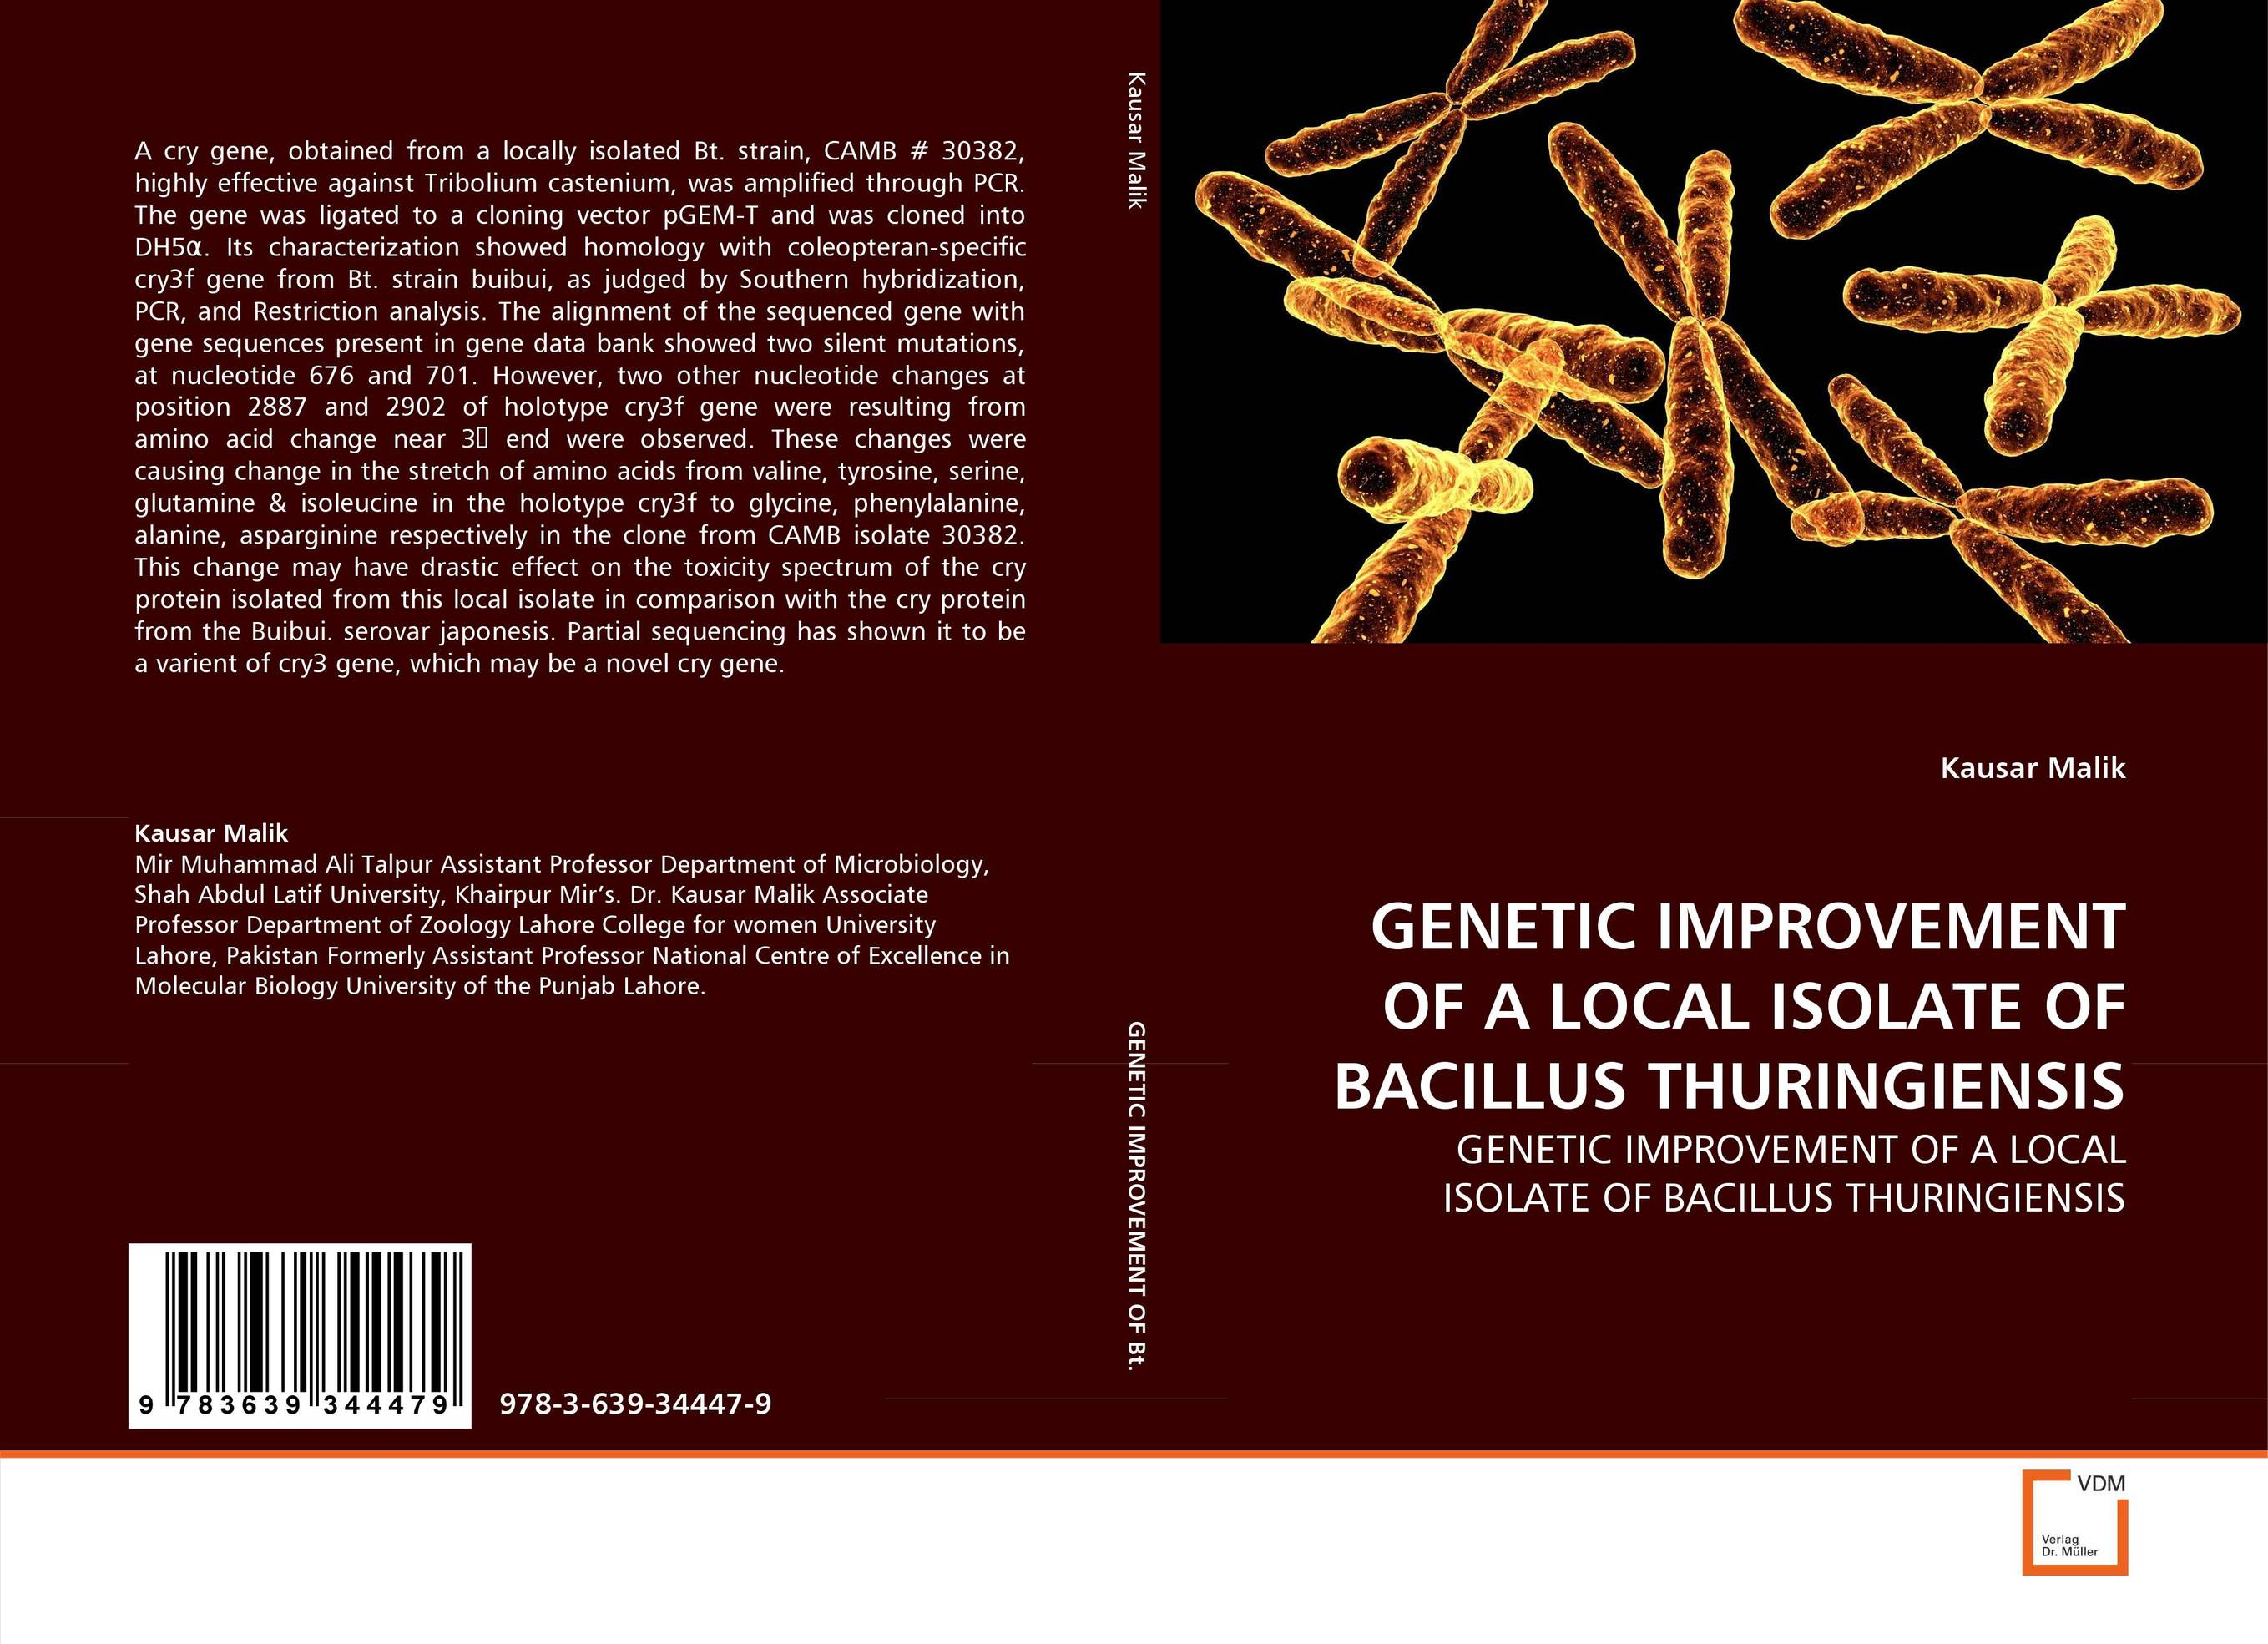 GENETIC IMPROVEMENT OF A LOCAL ISOLATE OF BACILLUS THURINGIENSIS atamjit singh pal paramjit kaur khinda and amarjit singh gill local drug delivery from concept to clinical applications